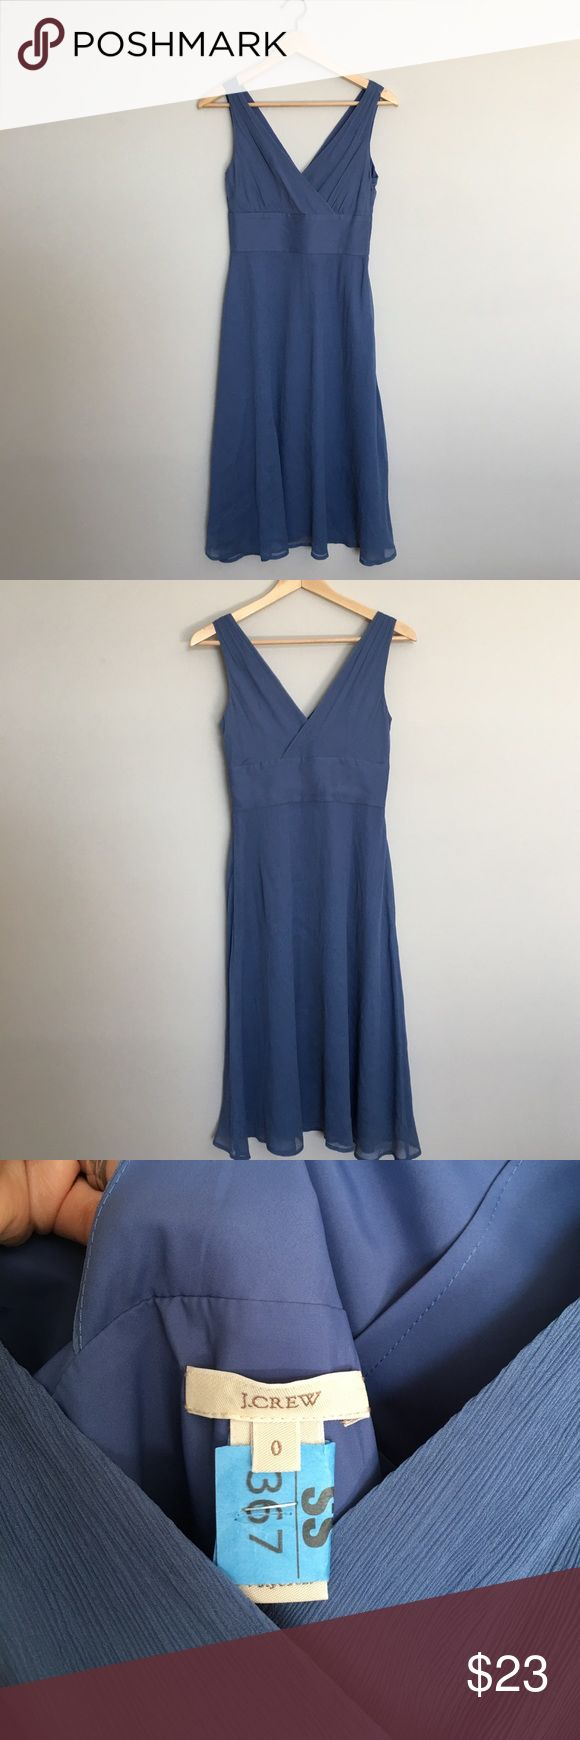 """J. Crew Blue Silk Sophia Dress Gorgeous Sophia dress from J. Crew in a beautiful steely blue. 100% silk and fully lined. Recently dry cleaned. Side zip. Size 0. Excellent condition except for a small spot on the front chest - see photo. Not very noticeable when on. Appx 42"""" long from top of shoulder. J. Crew Dresses Wedding"""